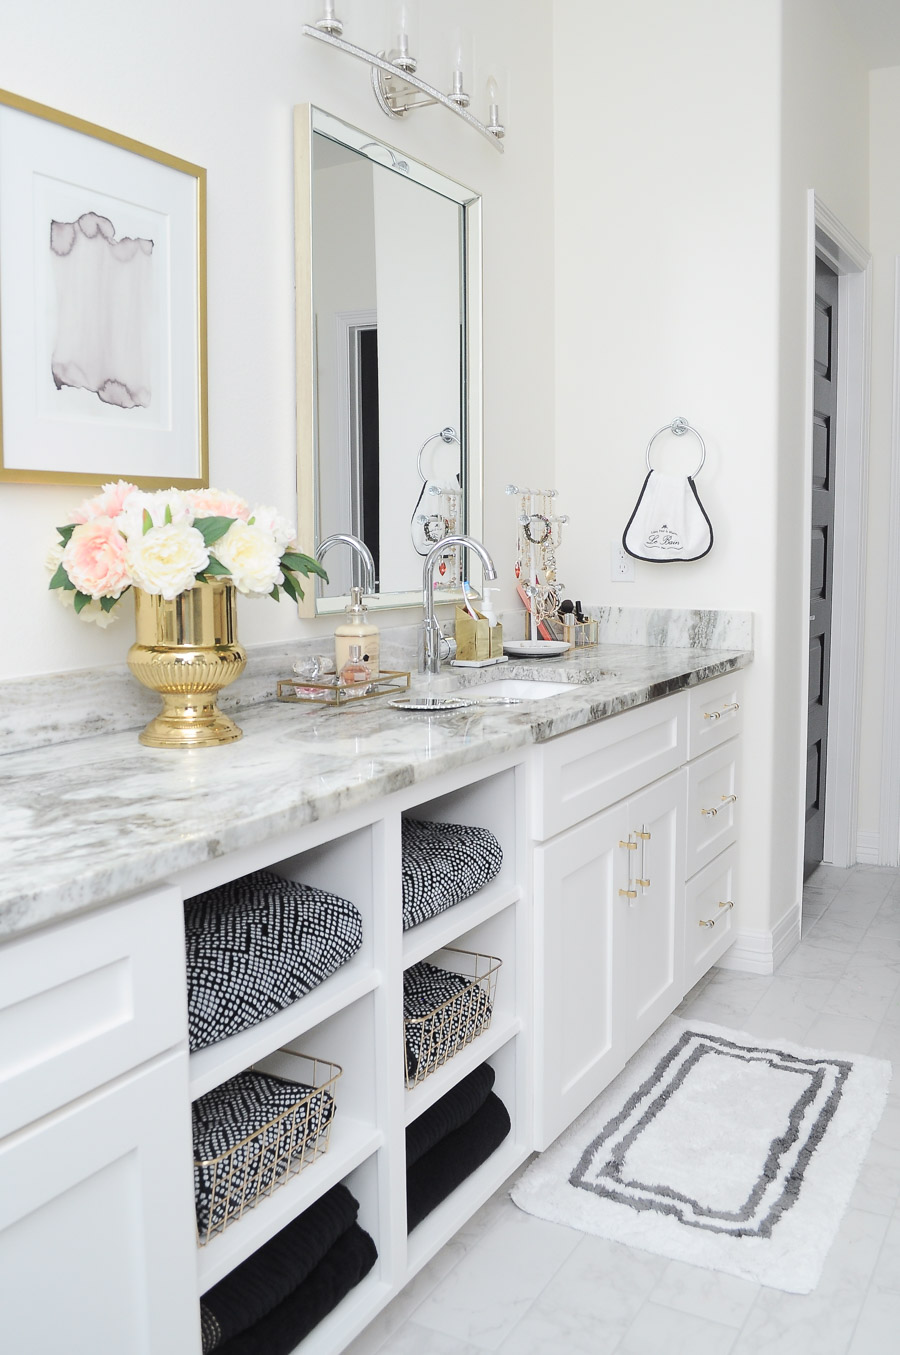 Master bathroom decor inspiration for a chic & glam bright white and gold boutique hotel look. Love the open shelving for the towels!